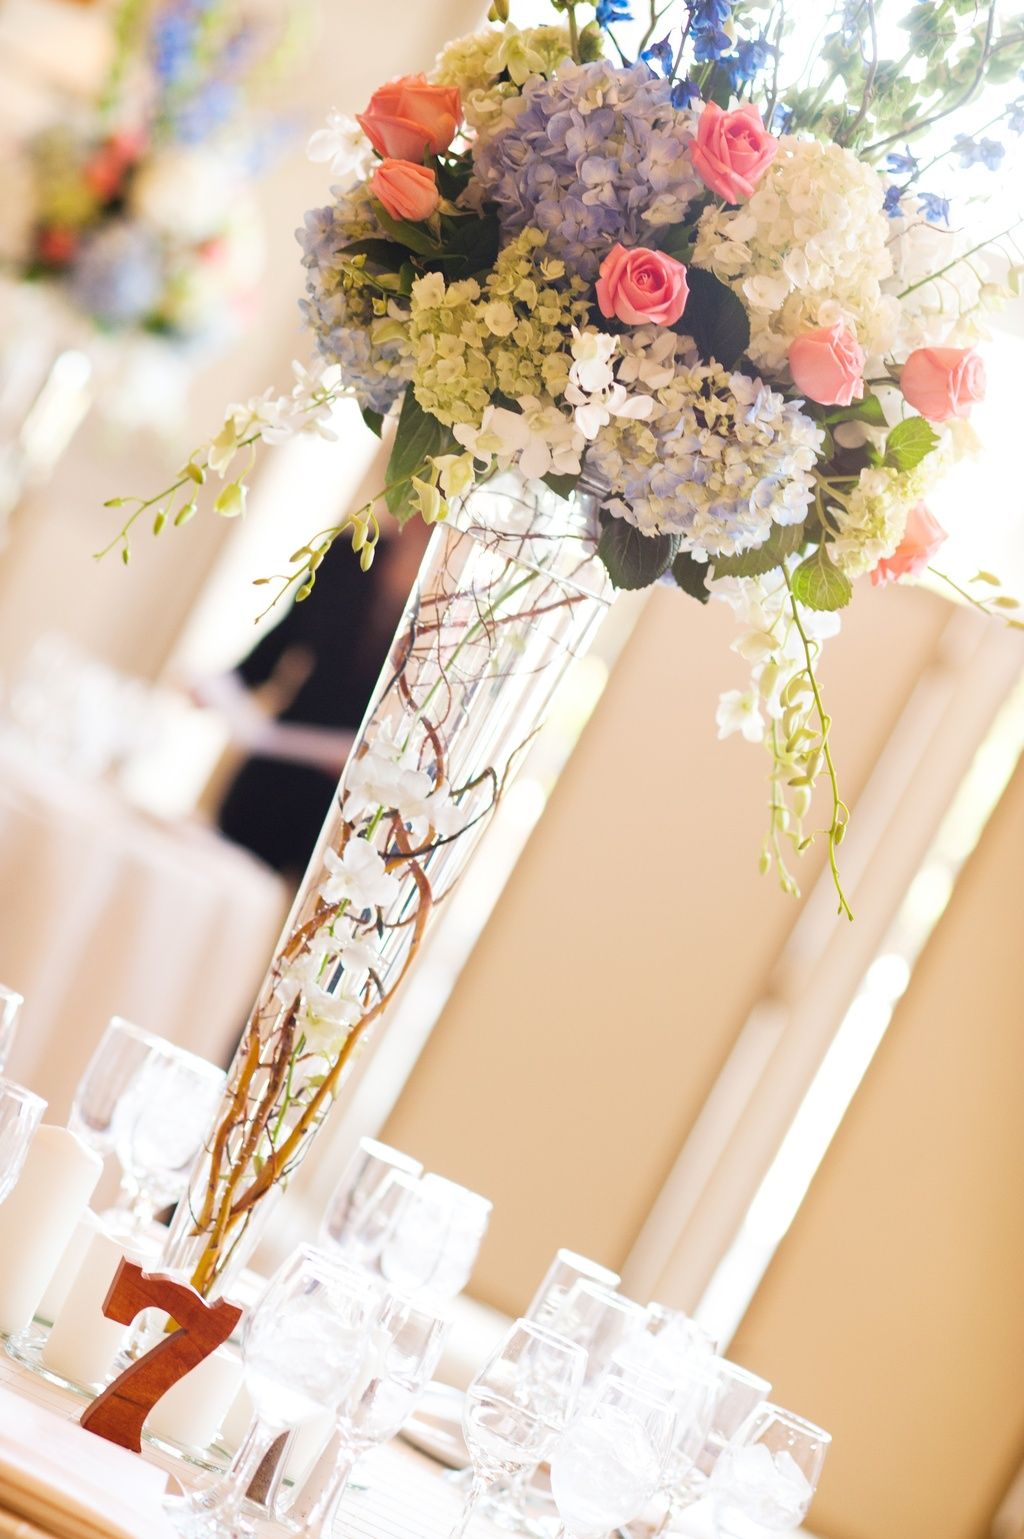 Elegant-real-wedding-with-simple-diy-details-topiary-centerpiece.full